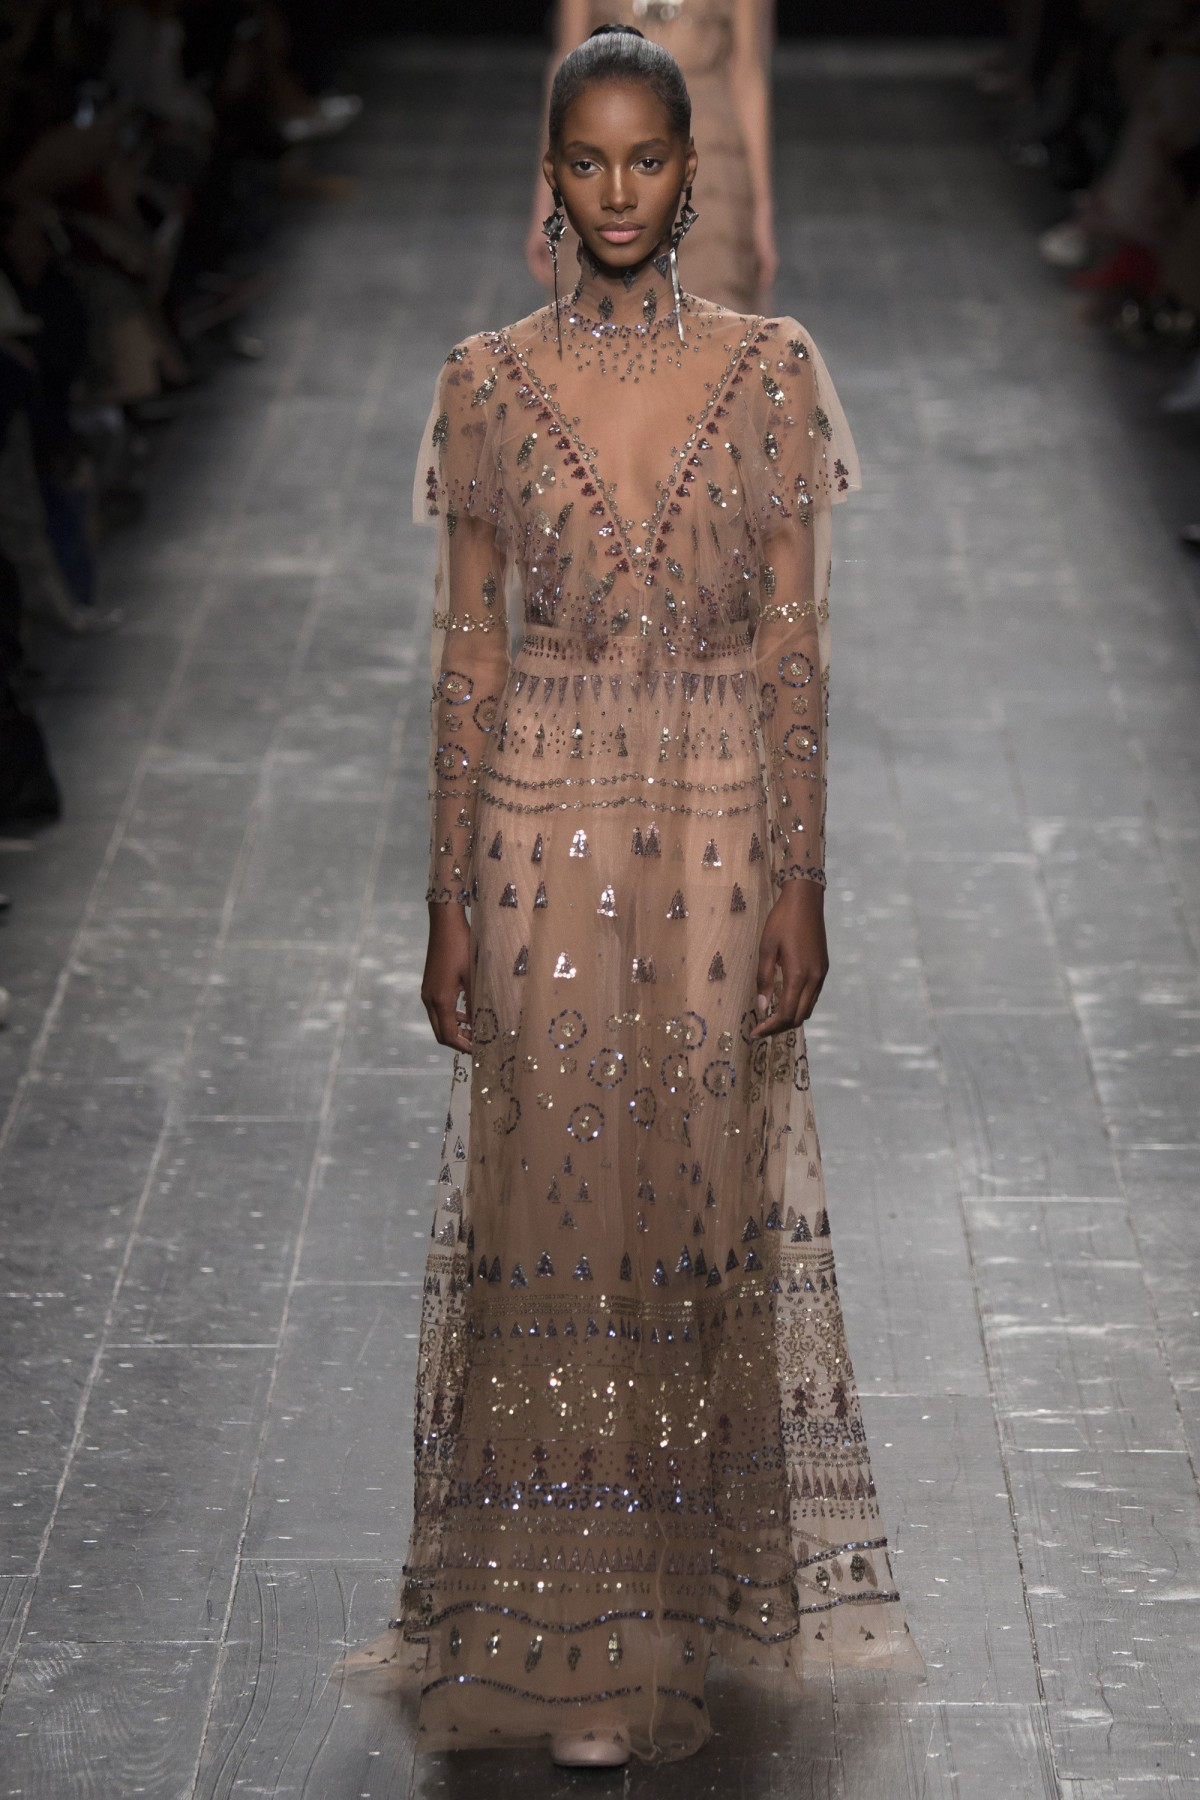 A look from Valentino's Fall 2016 Collection